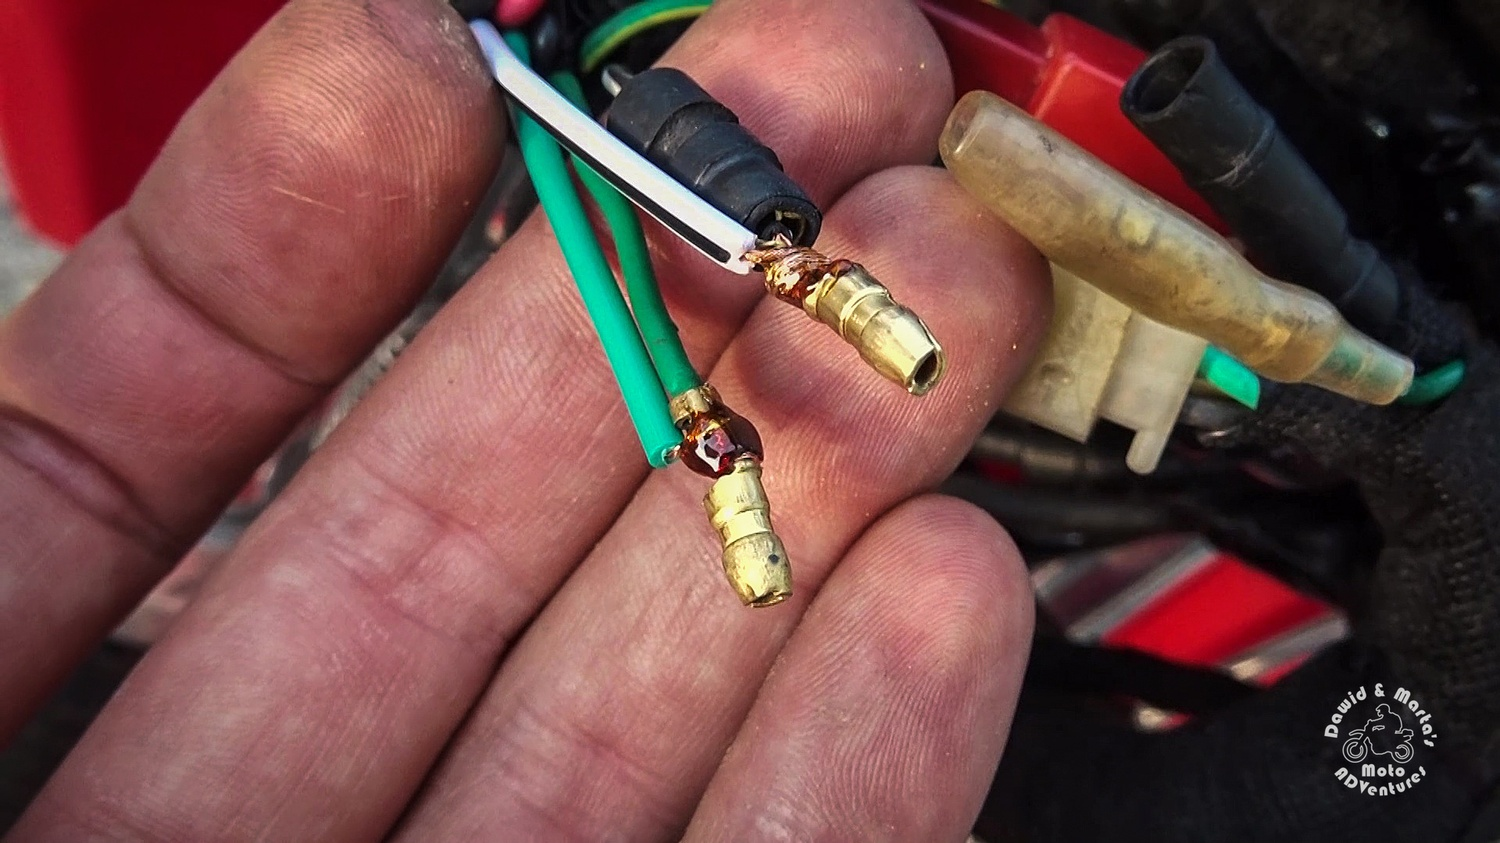 Soldering ignition switch in Honda XR400